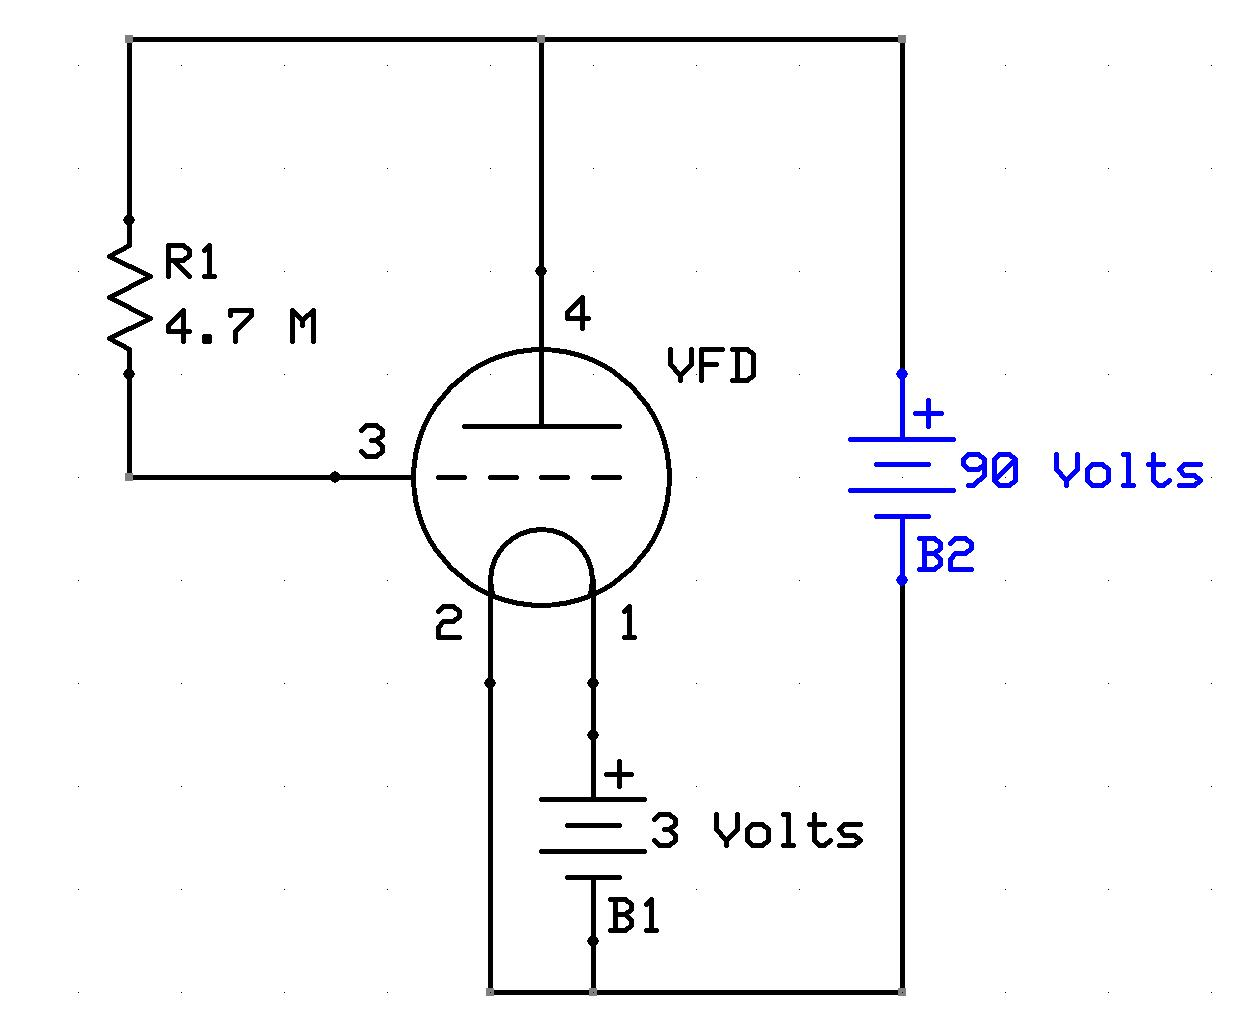 hight resolution of wiring diagram symbol contactor wiring discover your wiring vfd electrical schematic symbols